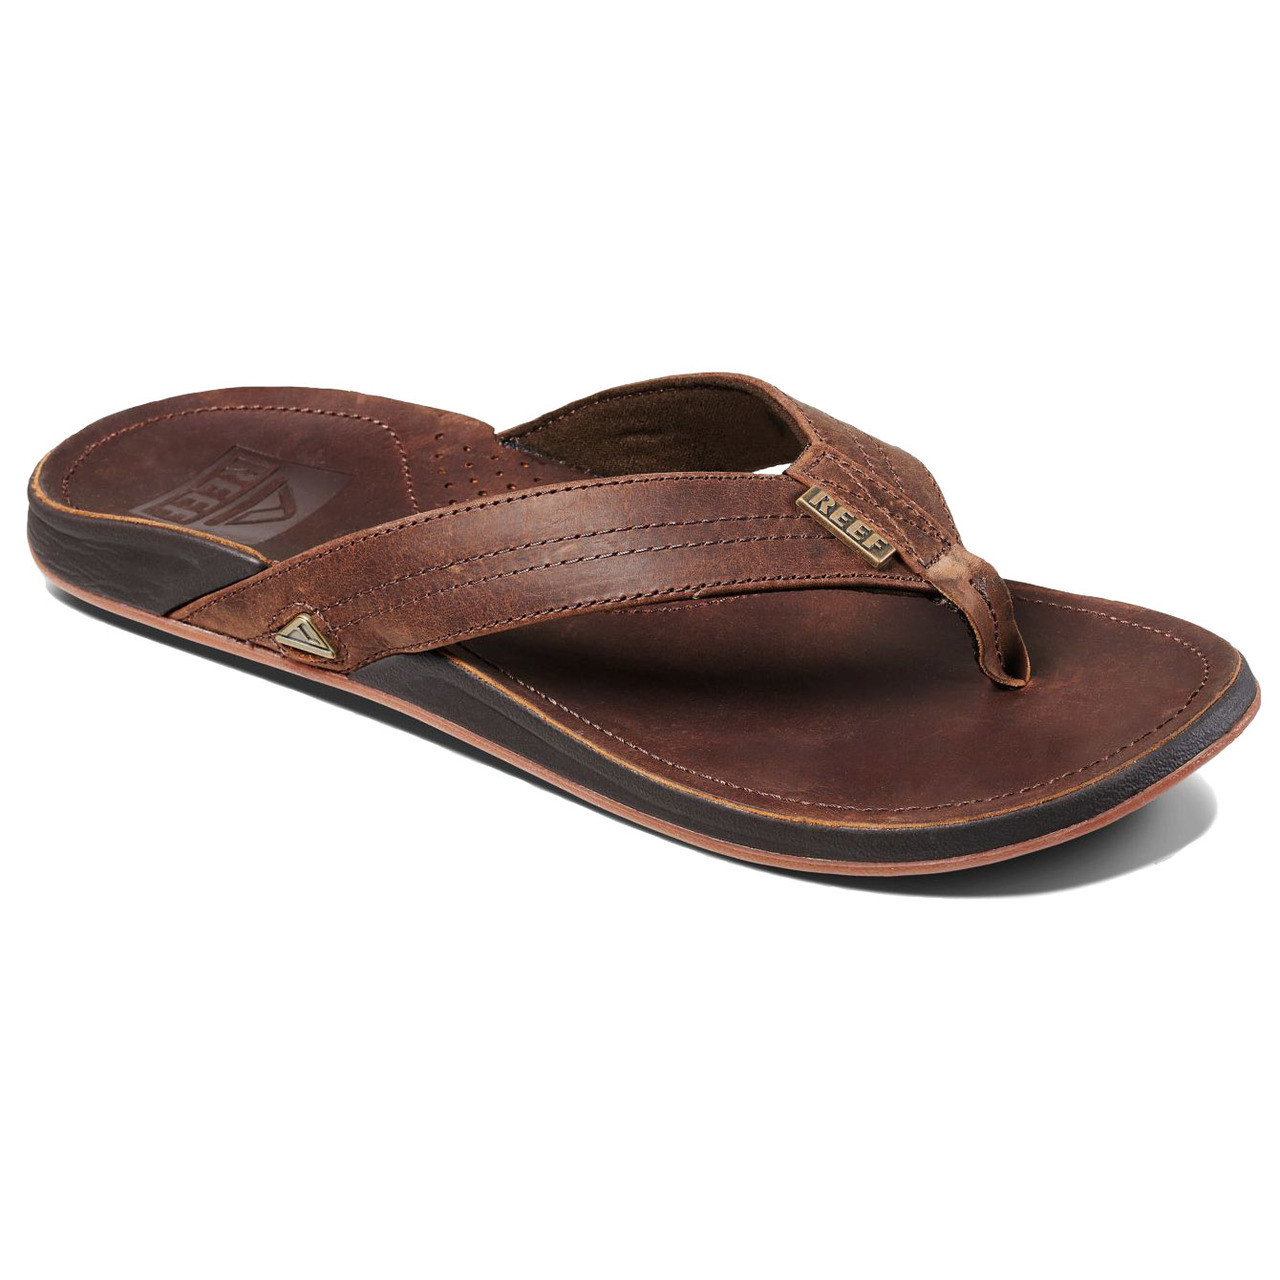 c6242bb806c6 Reef Flip Flop - Reef J-Bay III - Chocolate - Surf and Dirt